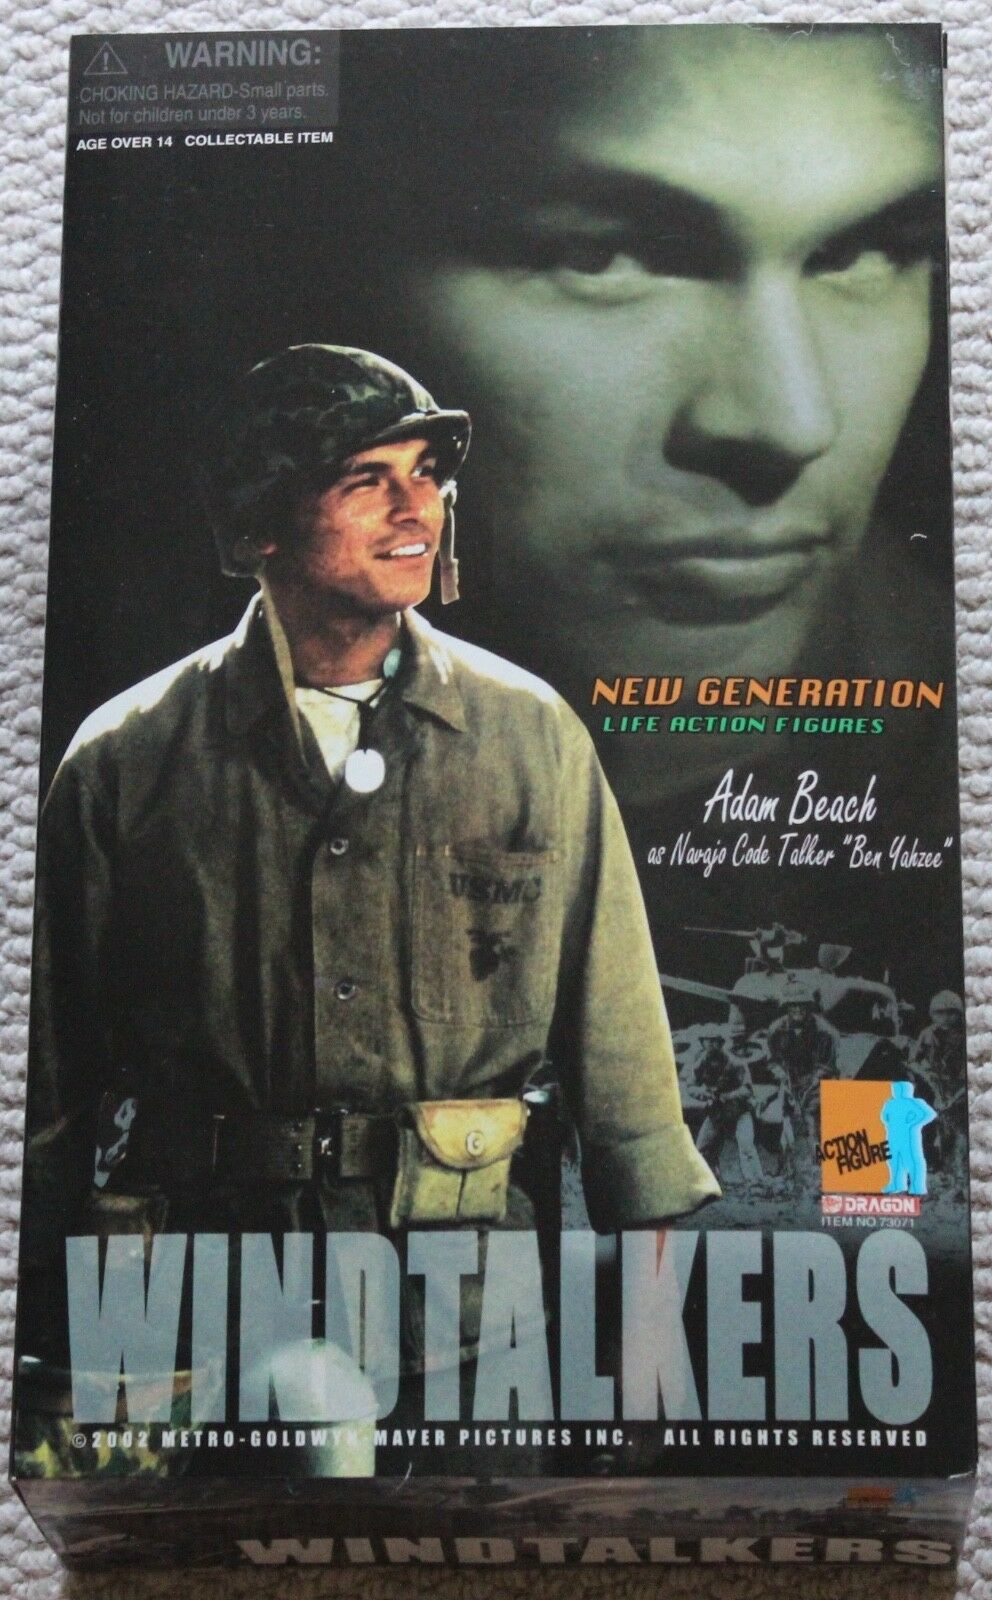 Dragon action figure us wind talkers adam beach 1/6 12'' hot toy ww11 did